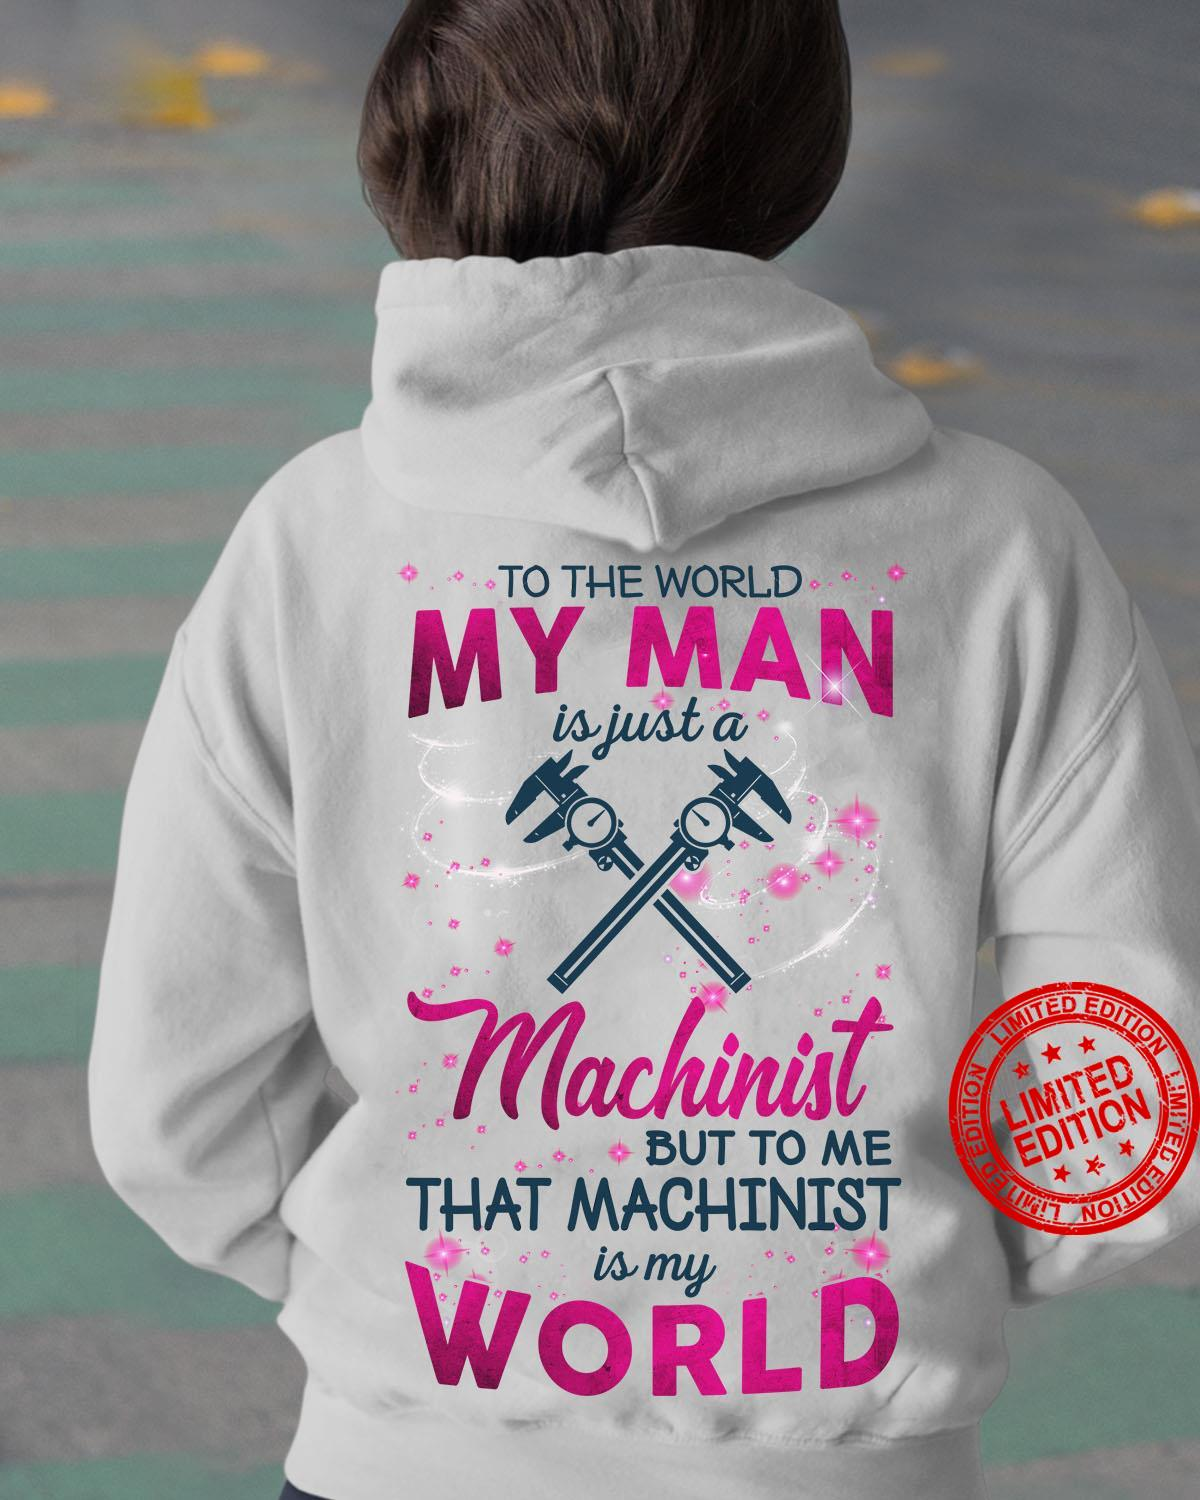 To The World My Man Is Just A Machinist But To Me That Machinist Is My World Shirt